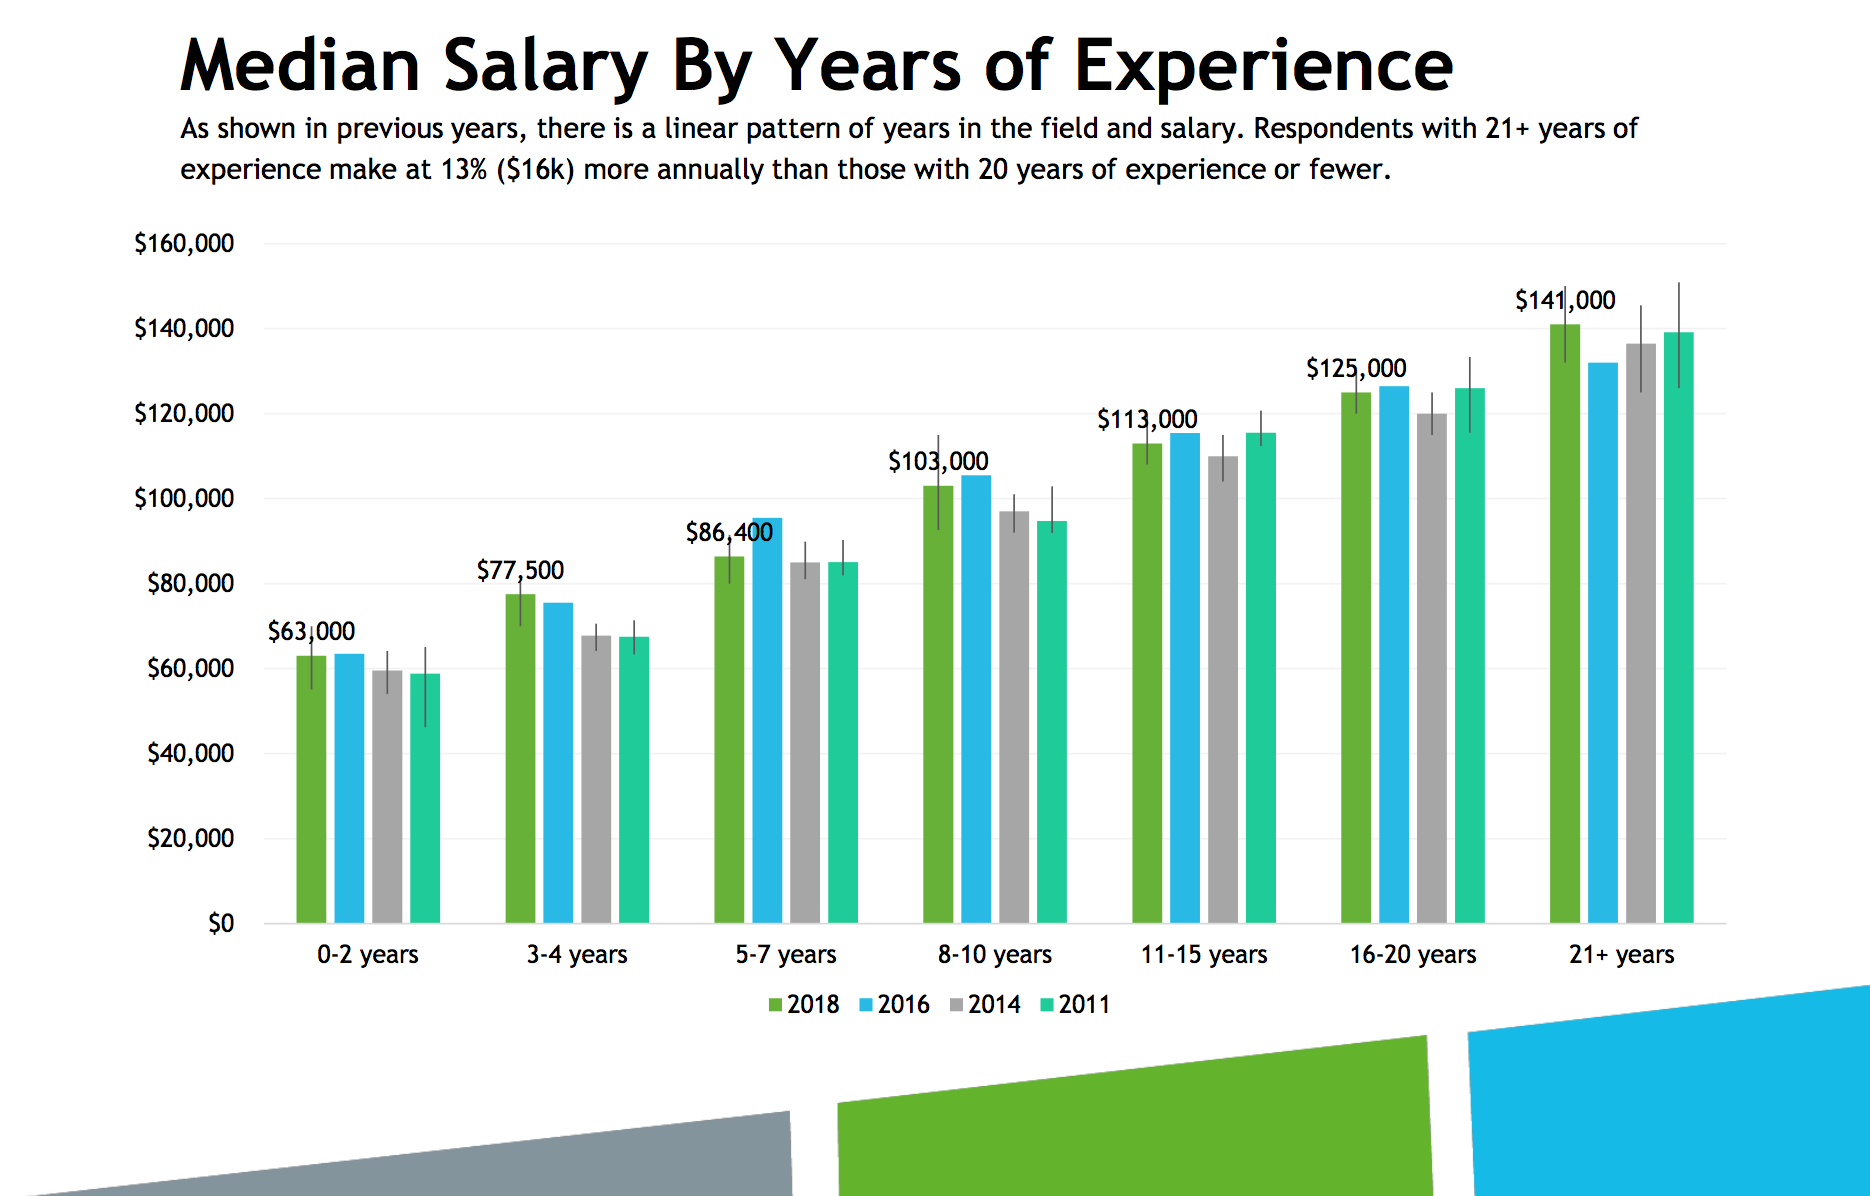 bar graph showing salary by years of experience with comparison to previous surveys